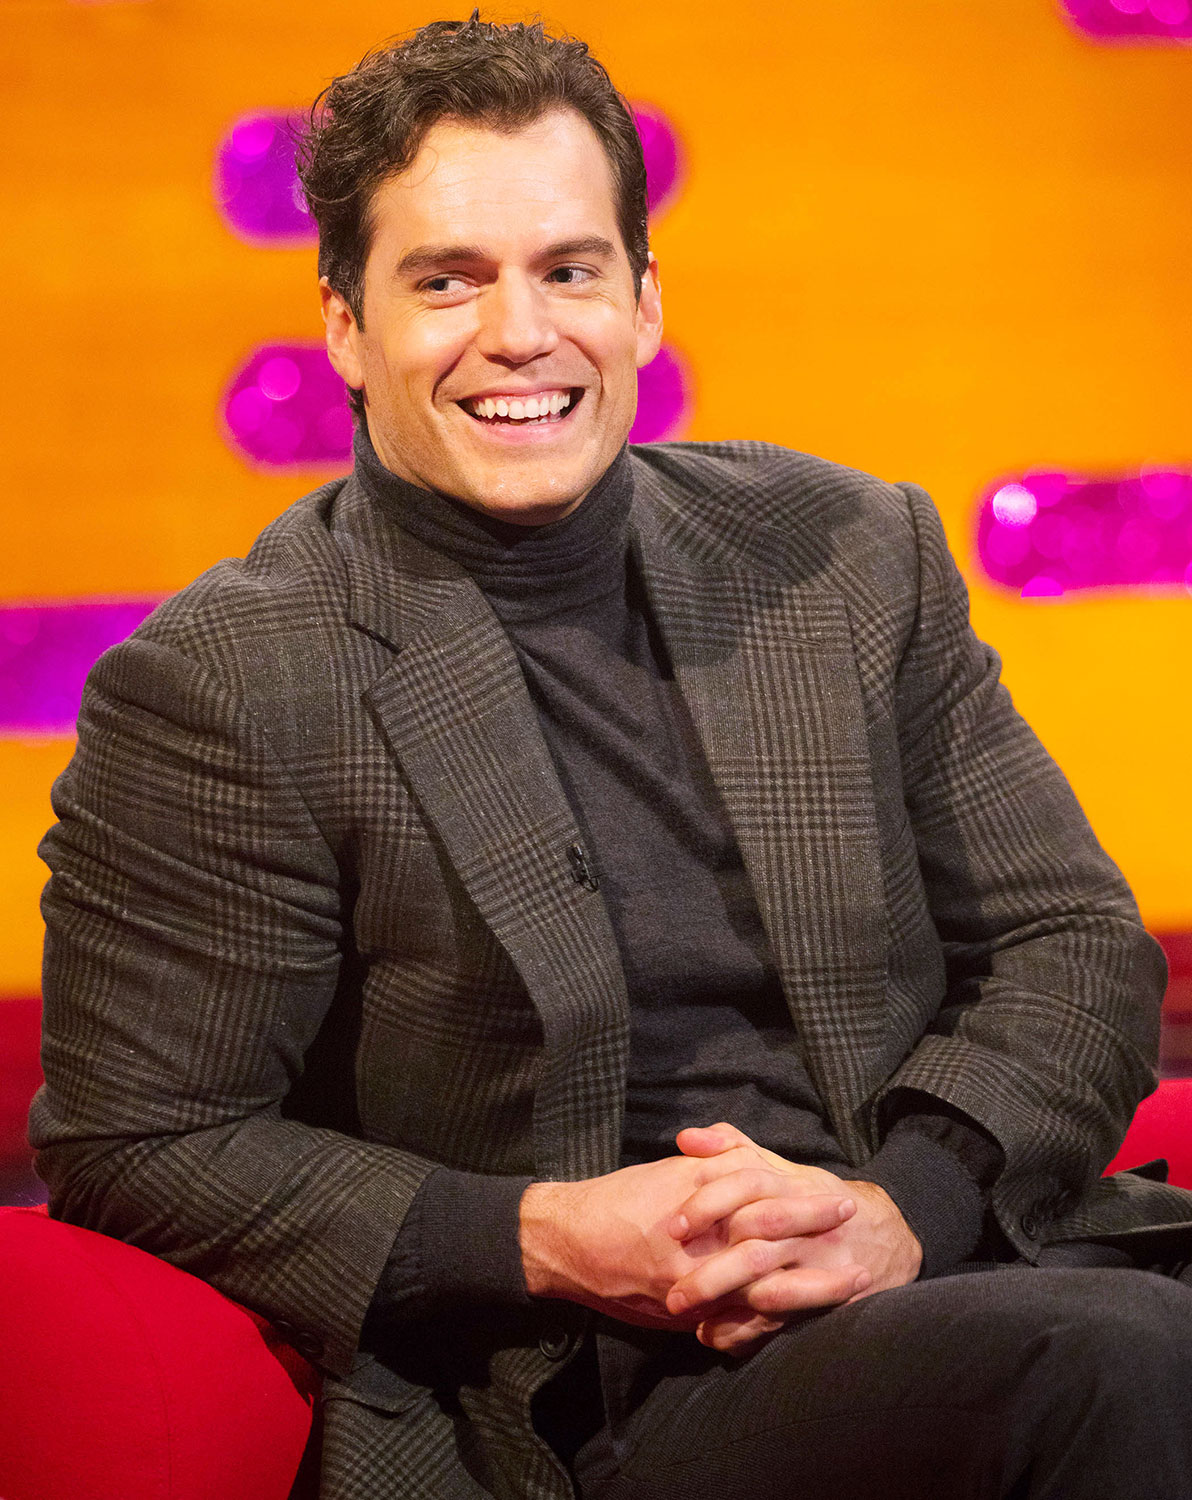 Henry Cavill during the filming for the Graham Norton Show at BBC Studioworks 6 Television Centre, Wood Lane, London, to be aired on BBC One on Friday evening